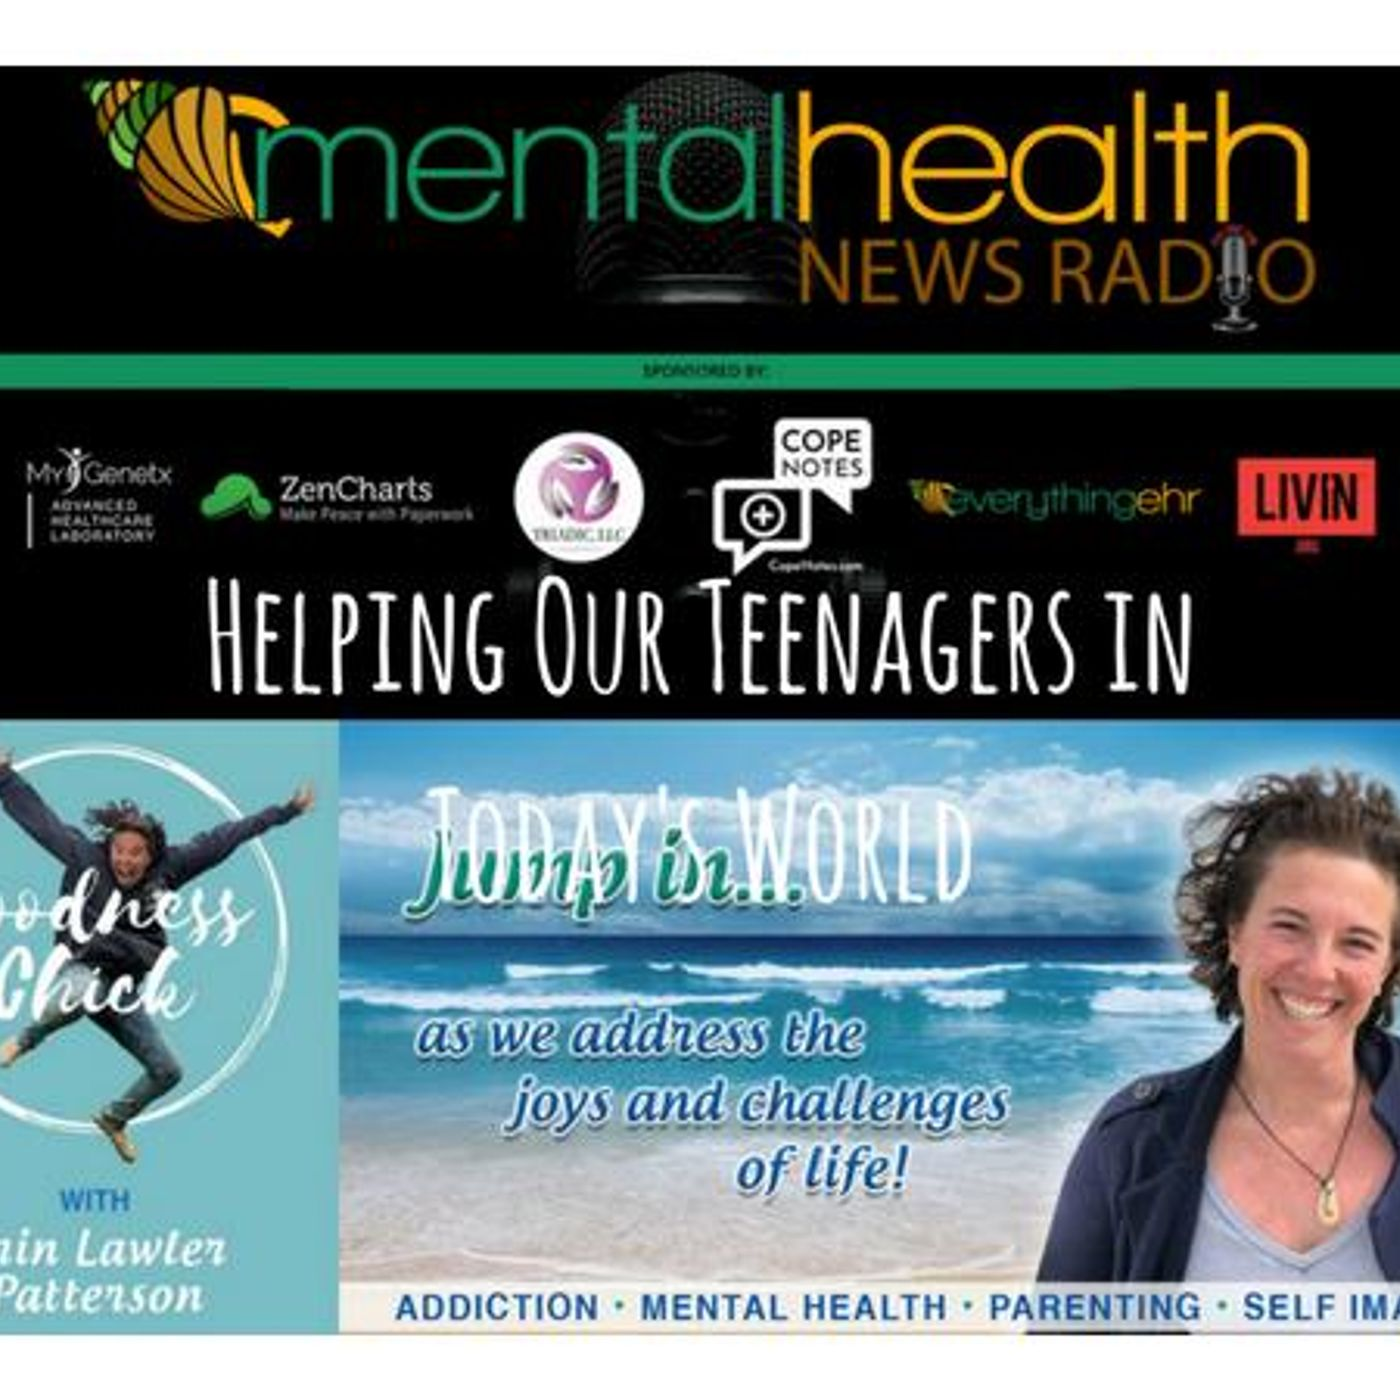 Mental Health News Radio - Helping Our Teenagers in Today's World: Erin Lawler - Goodness Chick